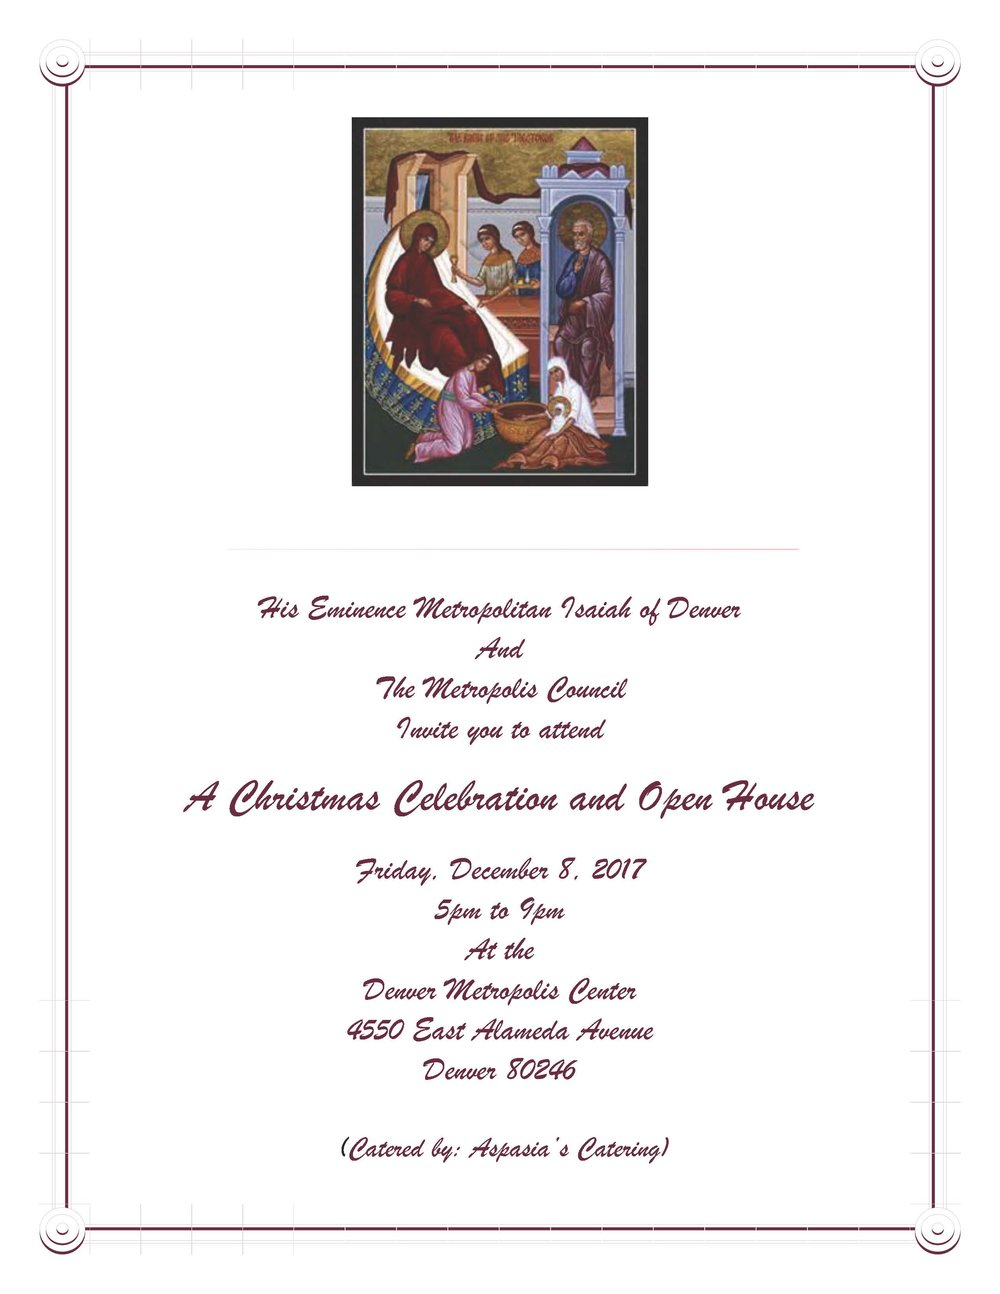 Metropolis_Open_House_Invitation_2017_final_Page_2.jpg